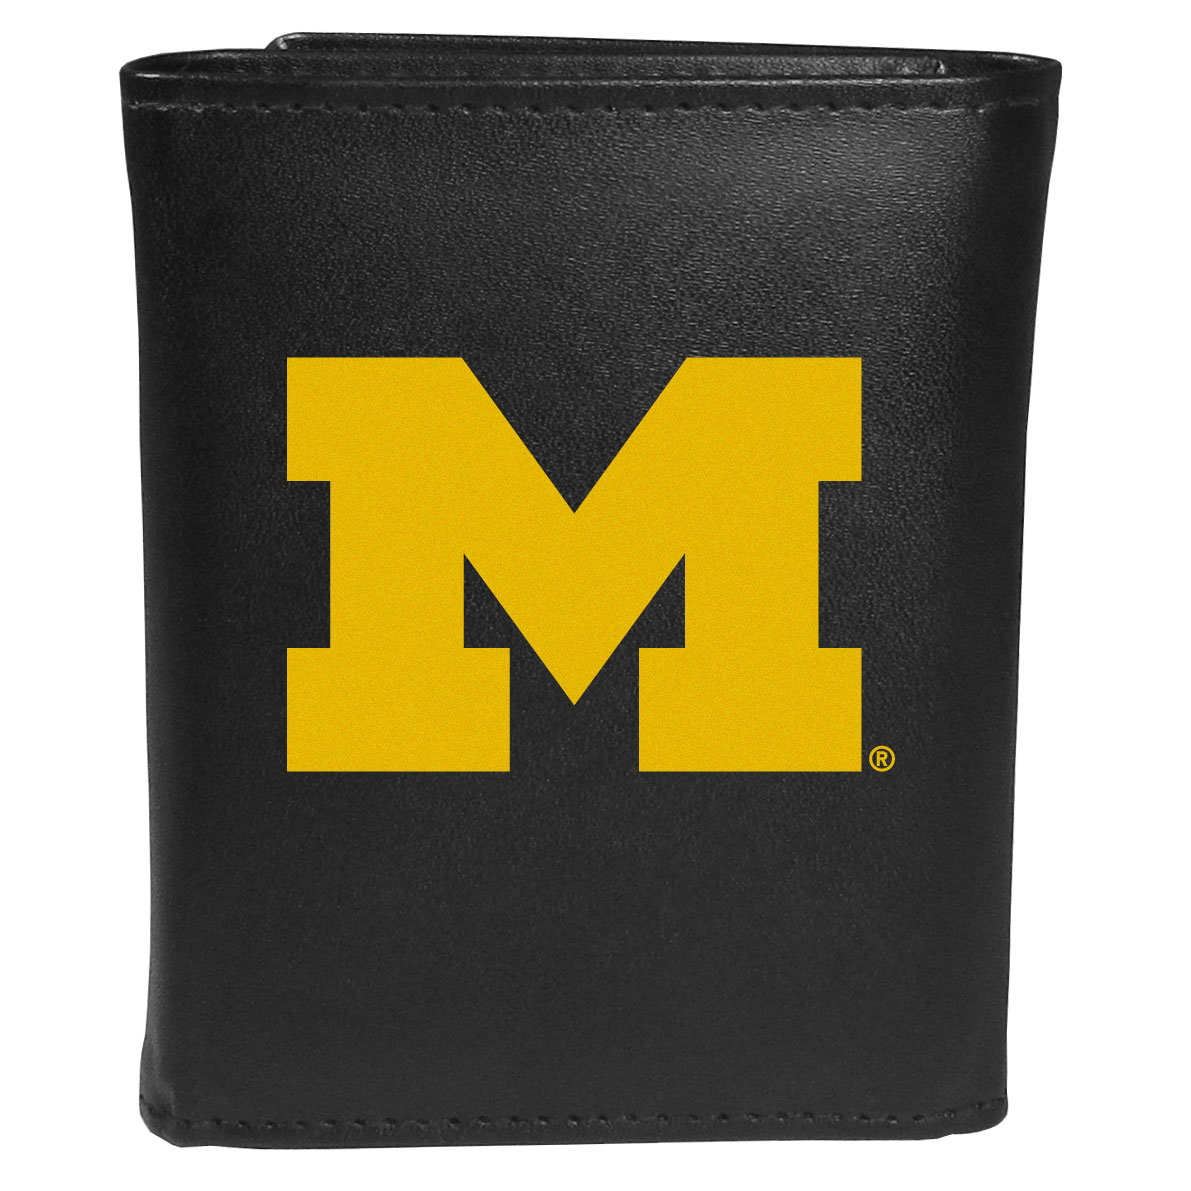 Michigan Wolverines Leather Tri-fold Wallet, Large Logo - Our classic fine leather tri-fold wallet is meticulously crafted with genuine leather that will age beautifully so you will have a quality wallet for years to come. This is fan apparel at its finest. The wallet is packed with organizational  features; lots of credit card slots, large billfold pocket, and a window ID slot. The front of the wallet features an extra large Michigan Wolverines printed logo.